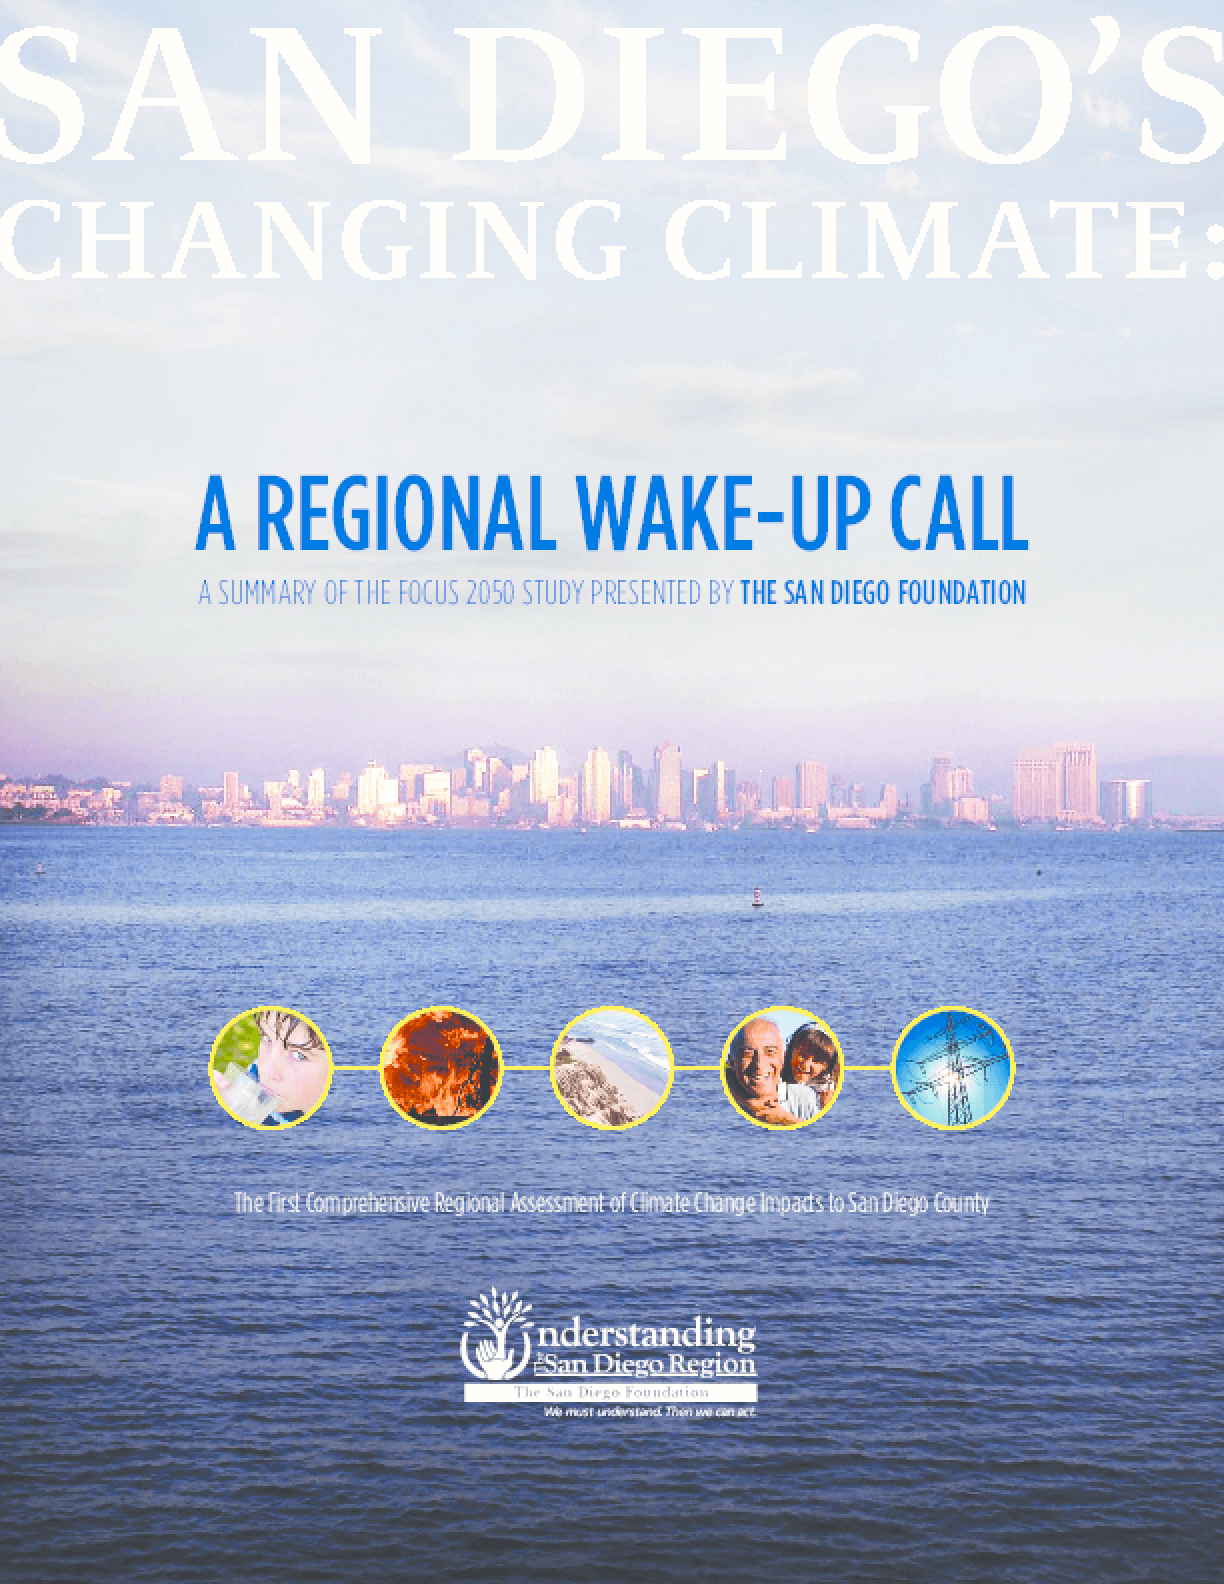 The San Diego Foundation Regional Focus 2050 Study: Climate Change Related Impacts in the San Diego Region by 2050